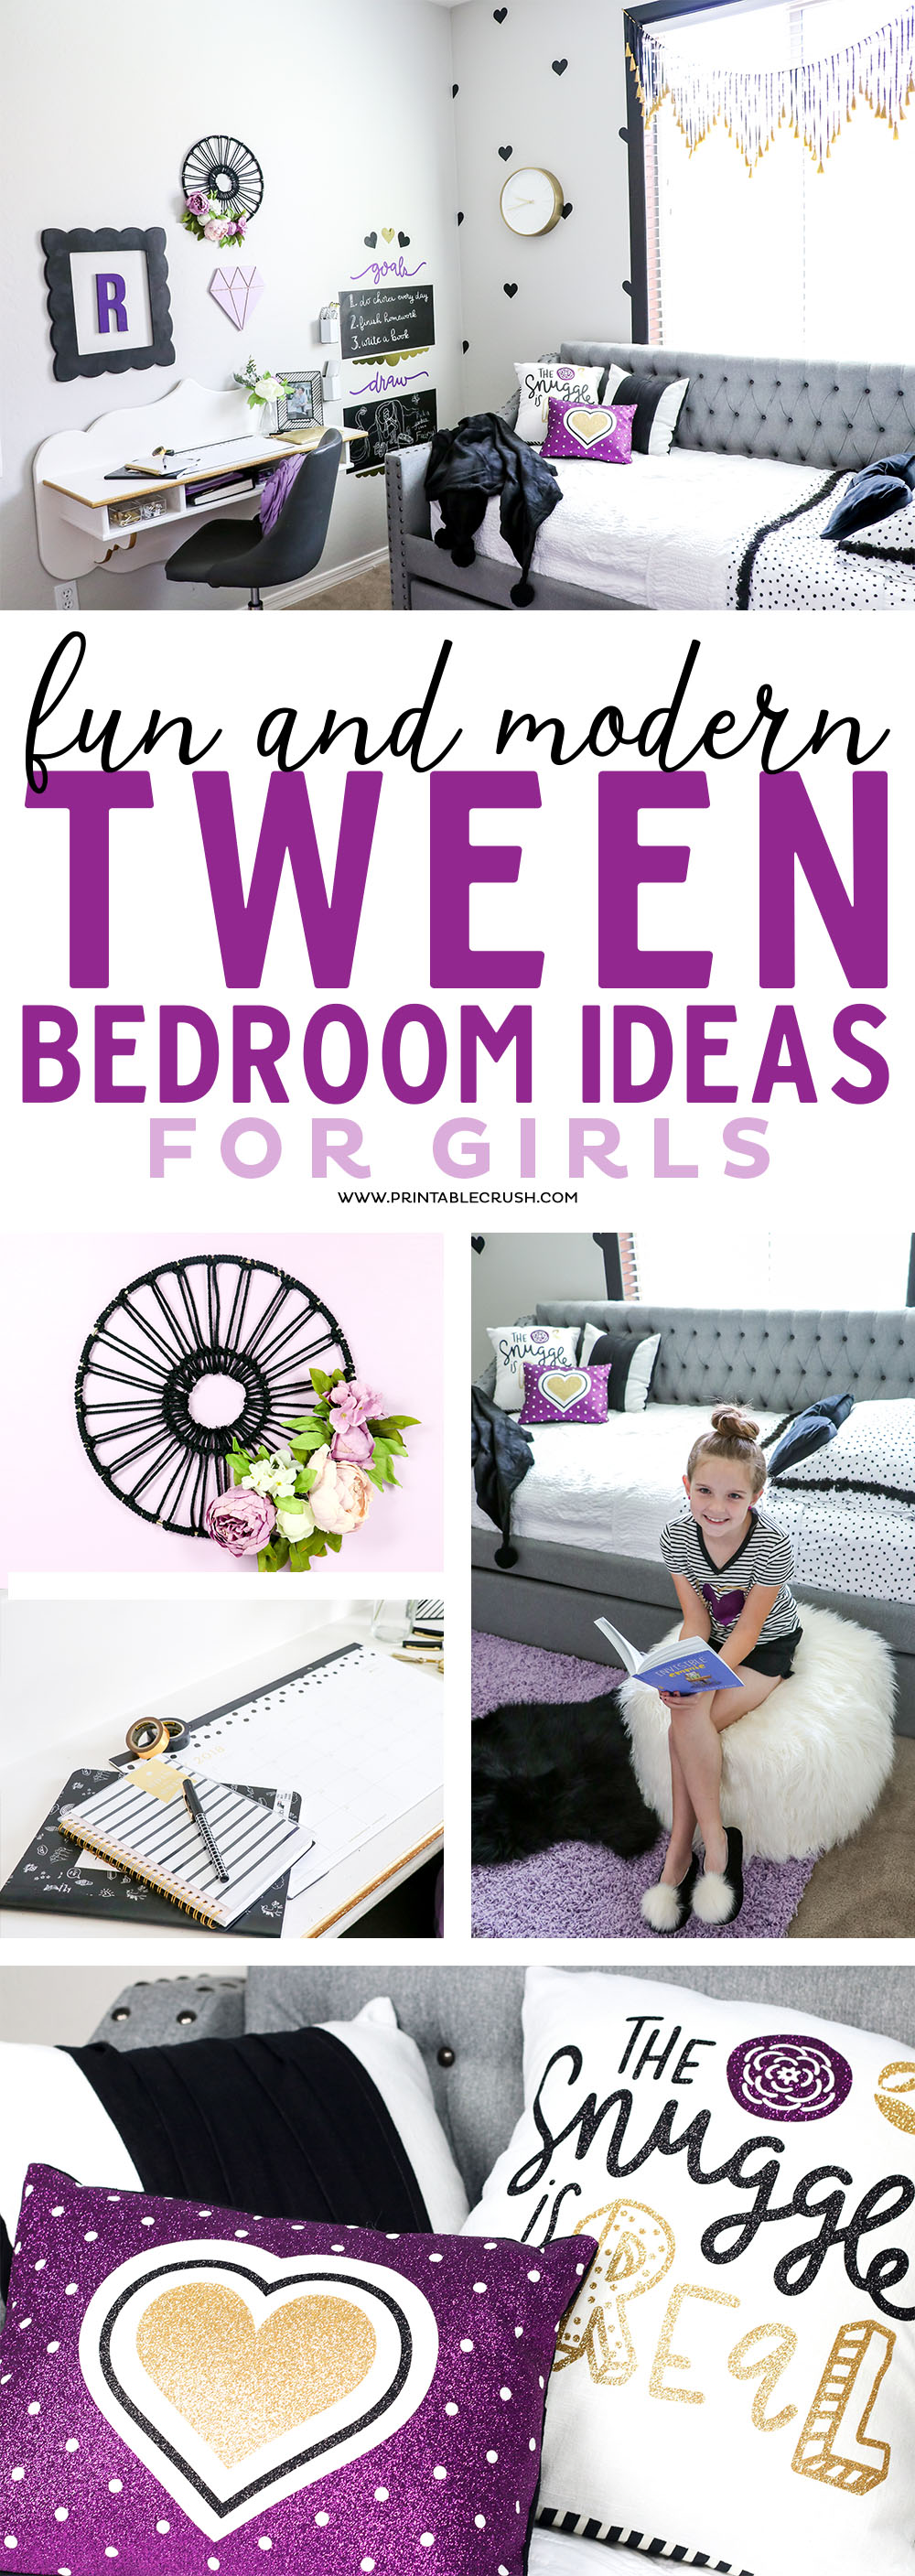 Redecorate your daughters bedroom with these fun and modern tween bedroom ideas! These styles will last through the teen years!